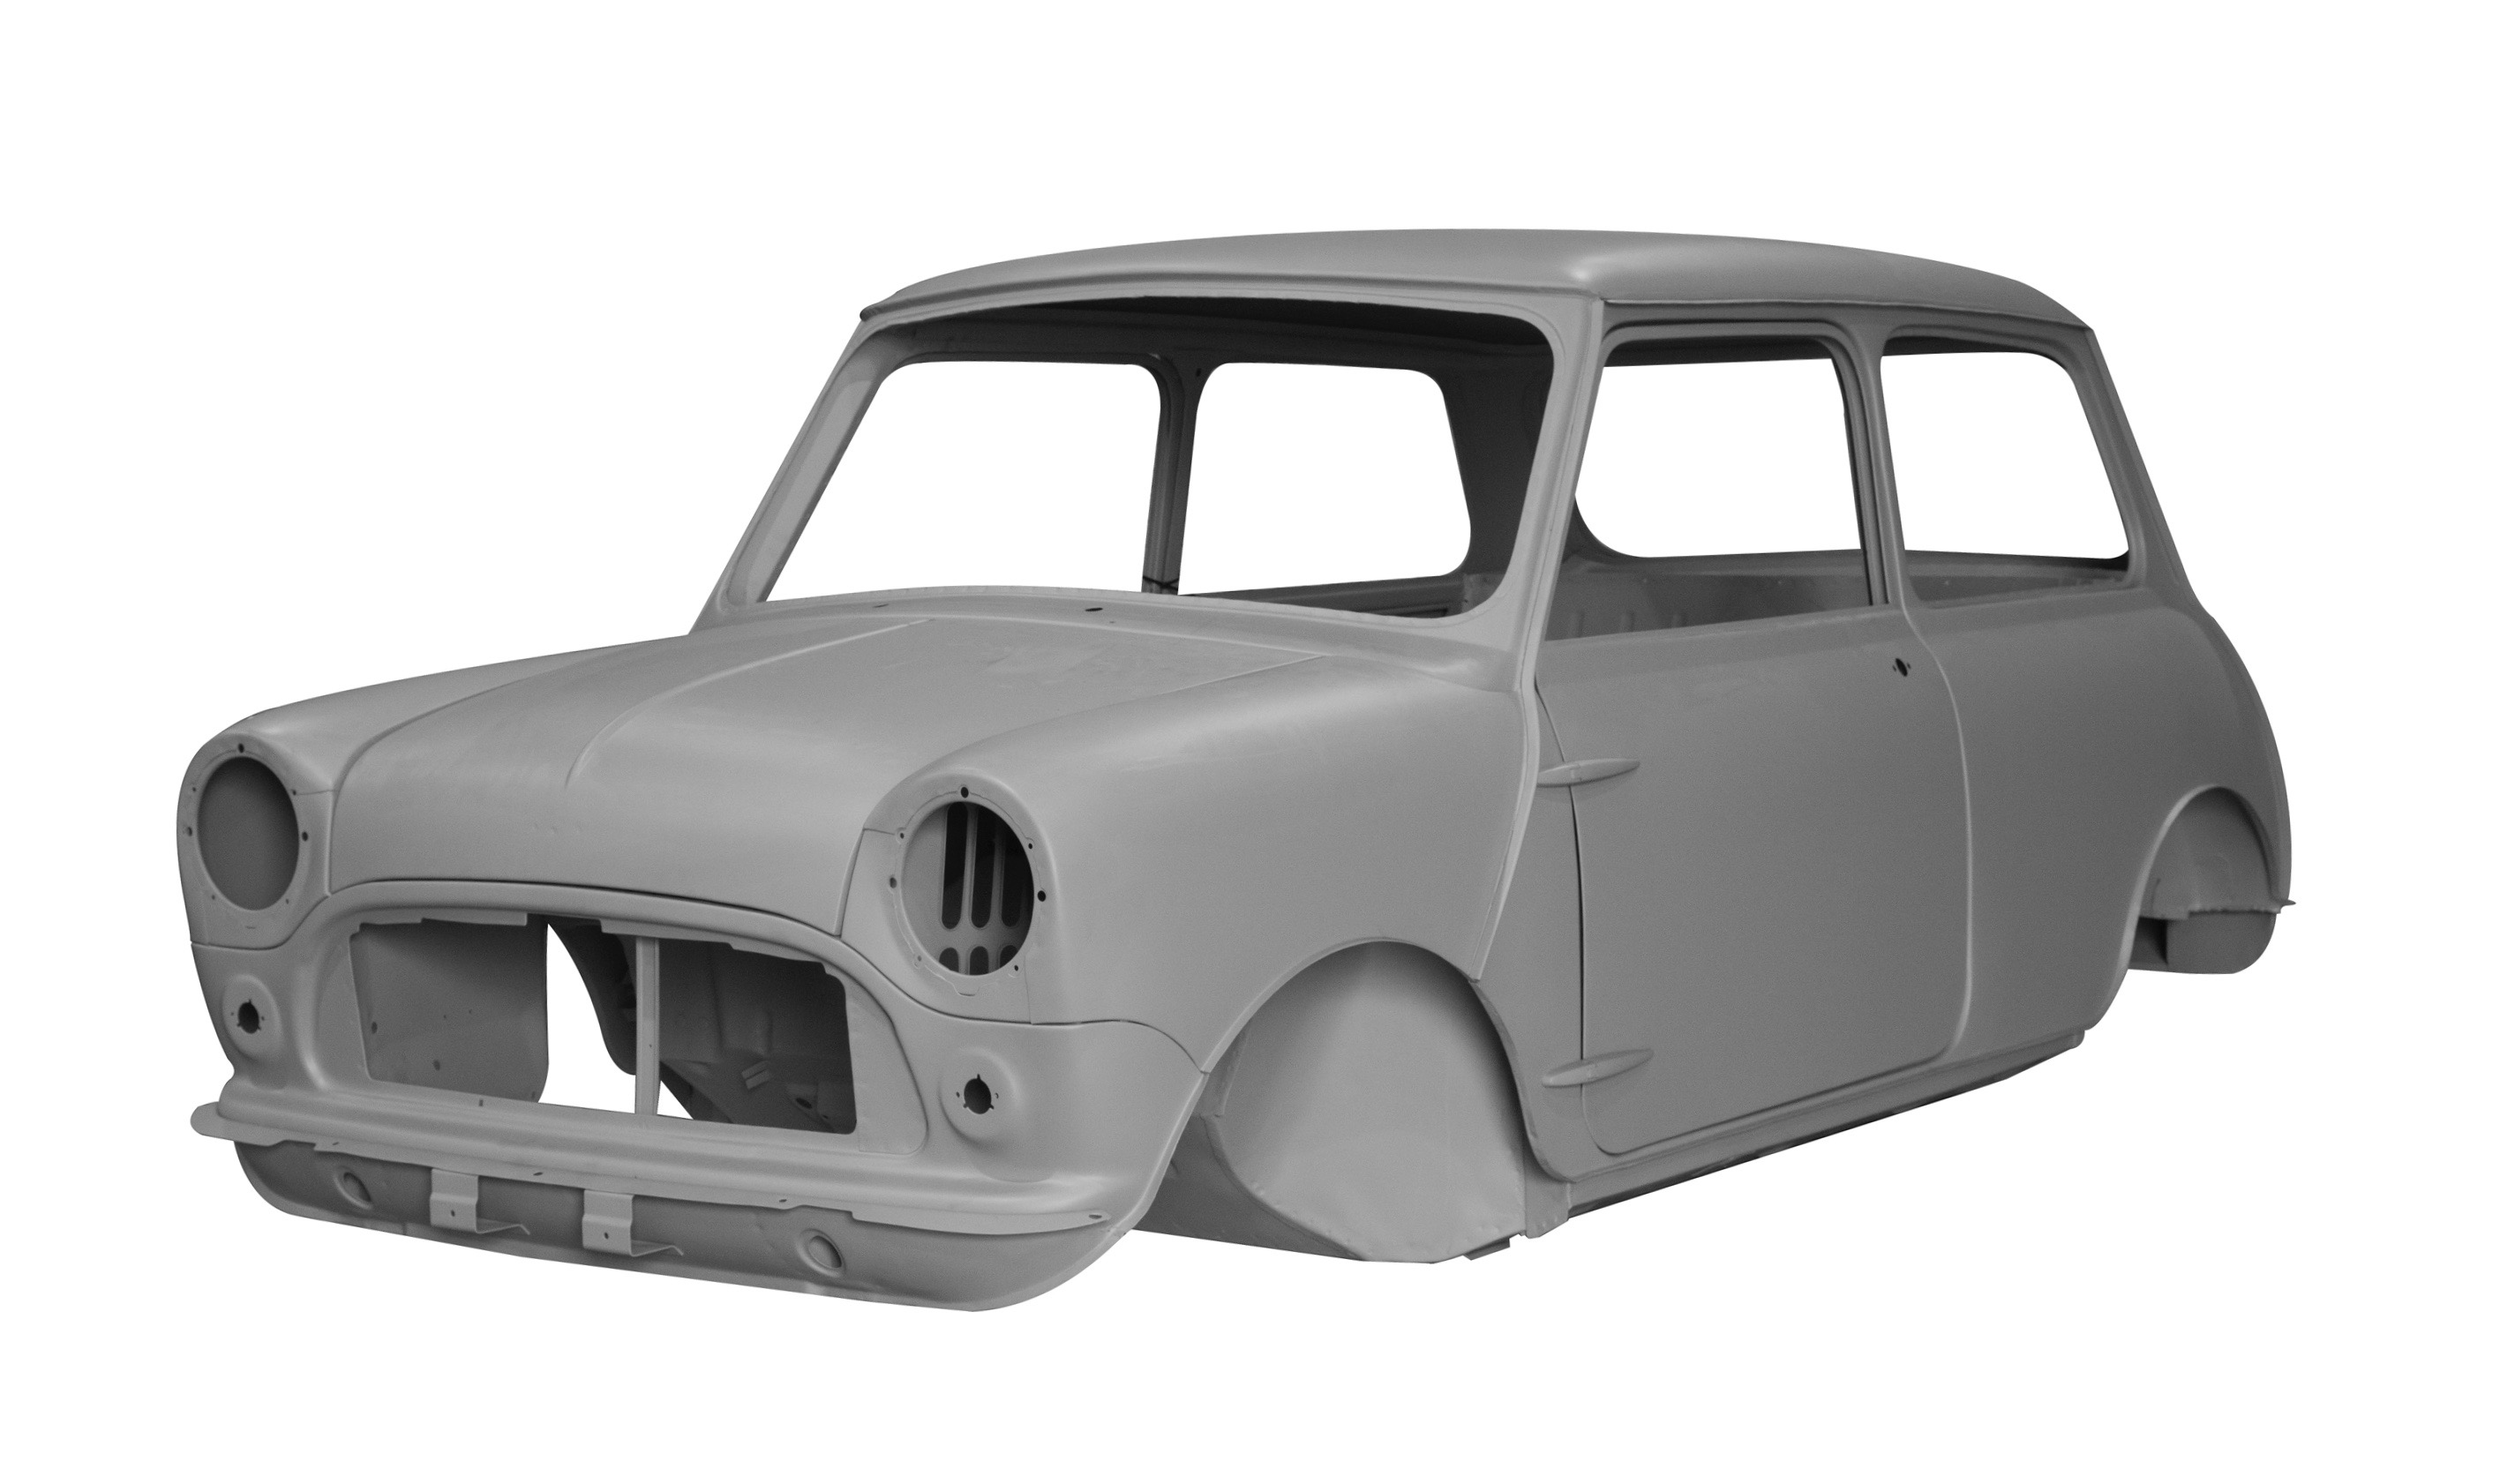 Need a new body for your vintage Mini? Or MGB 5-speed gearing?